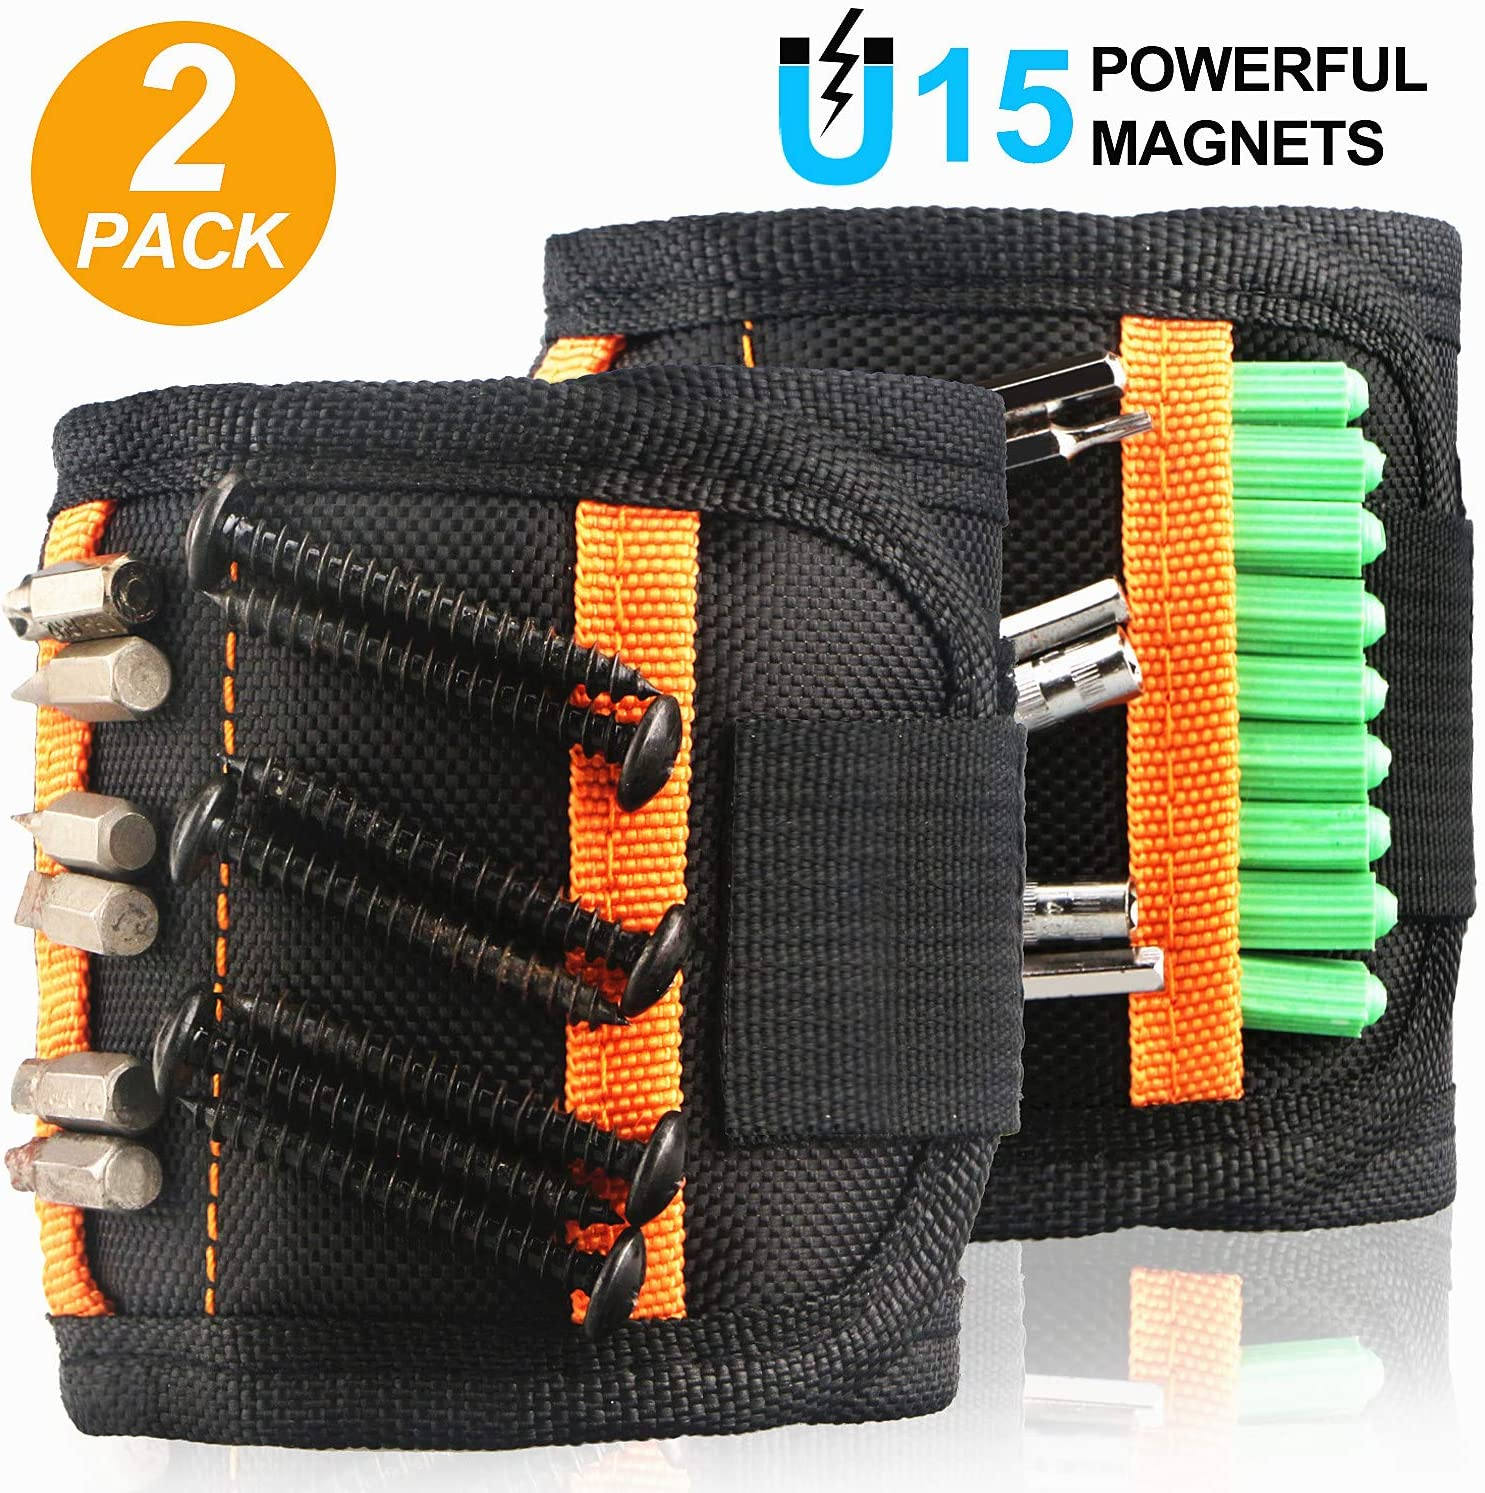 Magnetic Wristband Gifts for Men, 2 Pack Tool Belt with 15 Powerful Magnets for Holding Screws Nails Drill Bits, Unique Men Gifts Gadget for Father/Dad, Husband, DIY Handyman, Woodworker 81F4RR1DLyL